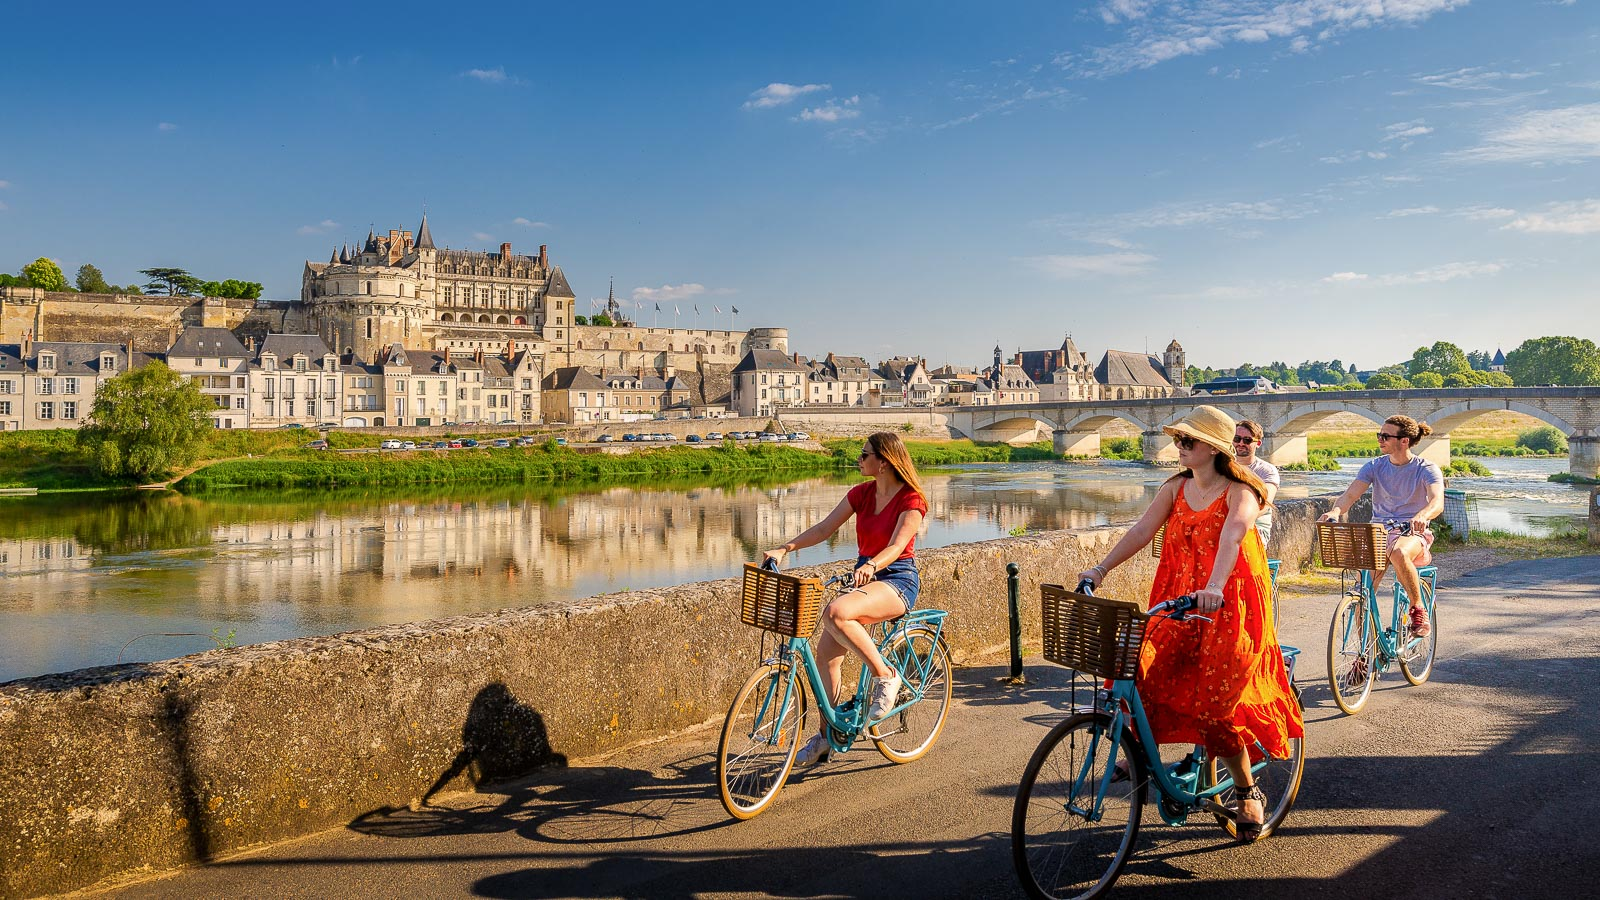 Enjoy the beautiful royal chateau of Amboise, near the Loire river and french vineyards. You will easily find a hotel near this Loire Valley Chateau, near to Chambord, Blois, Chaumont, Chenonceau, Saumur, Candes Saint Martin, Vouvray wines (France).